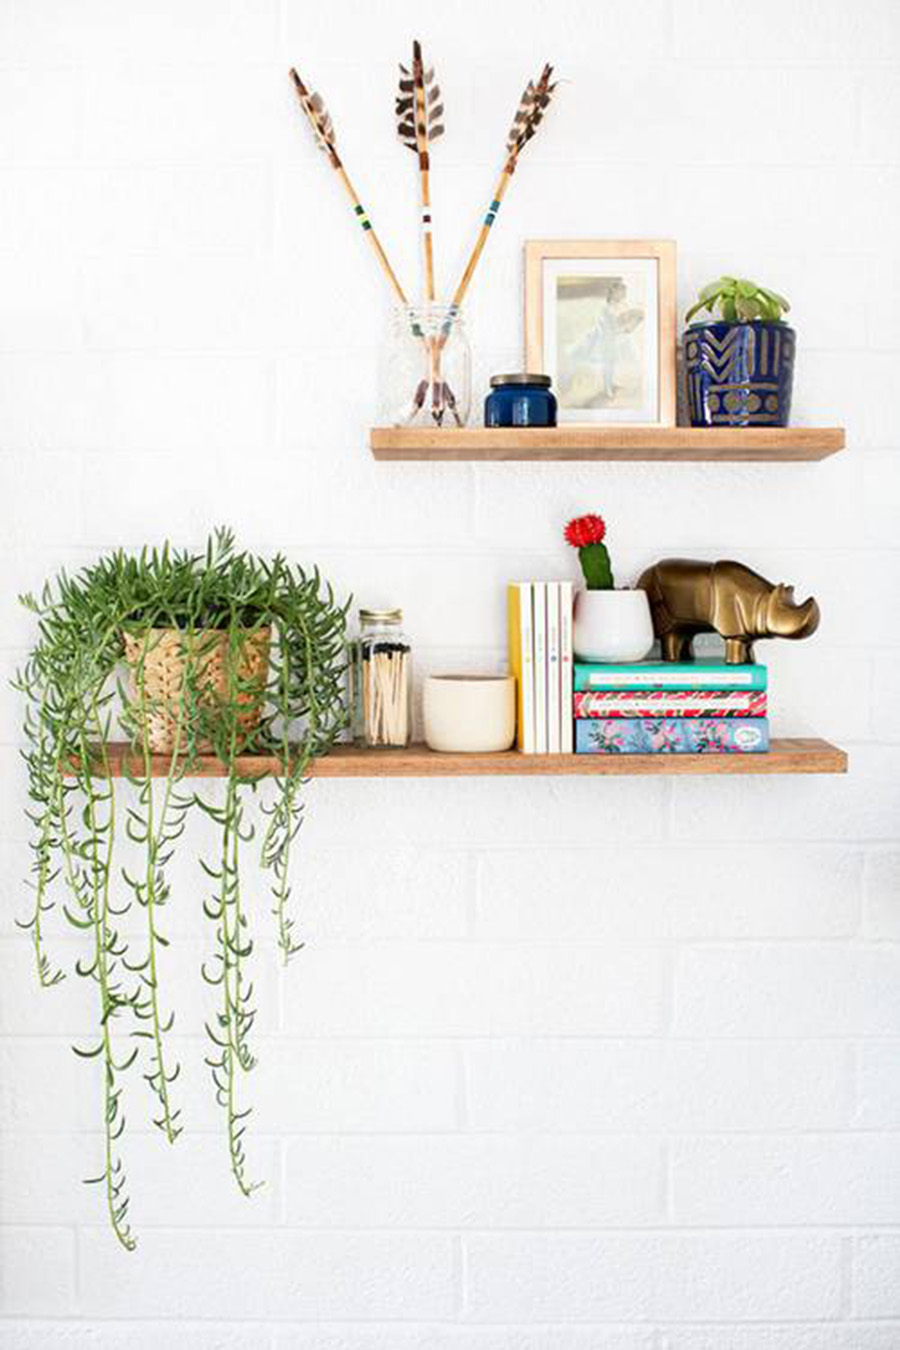 Shelf Styling, Decorating Shelves, Home Decor, Home Styling, Interior Design, Home Tour, Bohemian Style